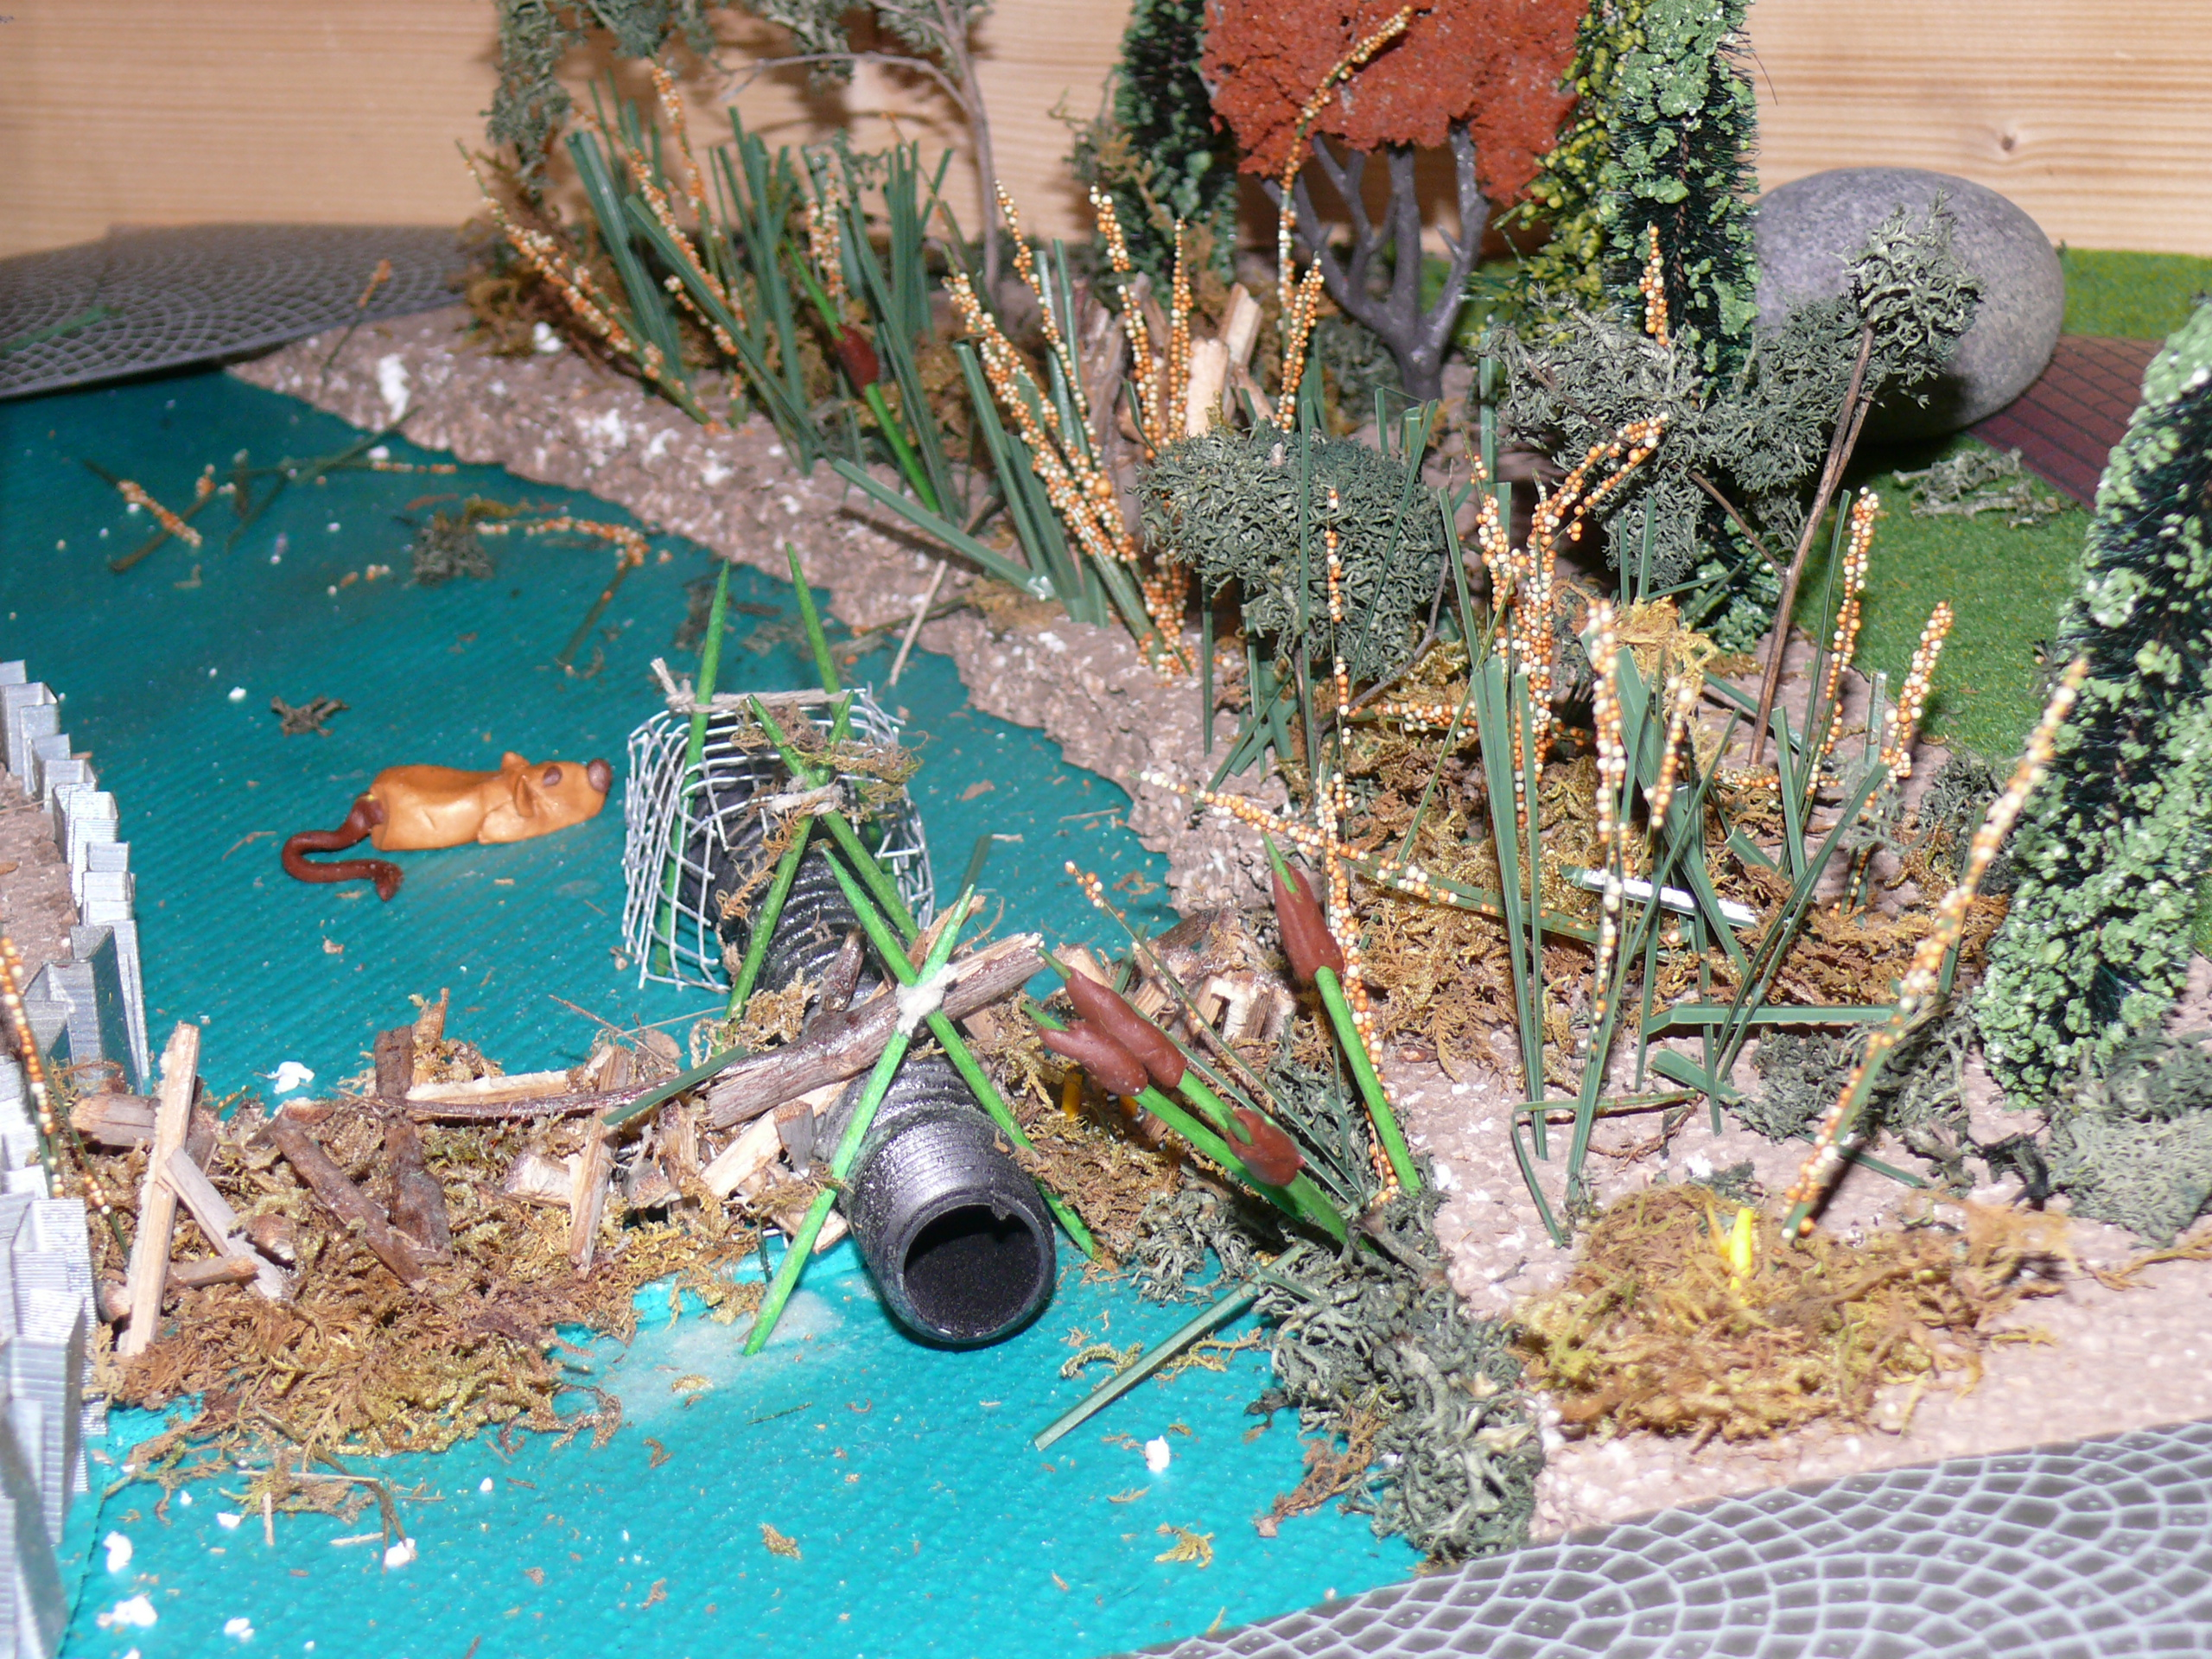 Pictures of Wetland Diorama http://www.martinezbeavers.org/wordpress/2009/04/12/